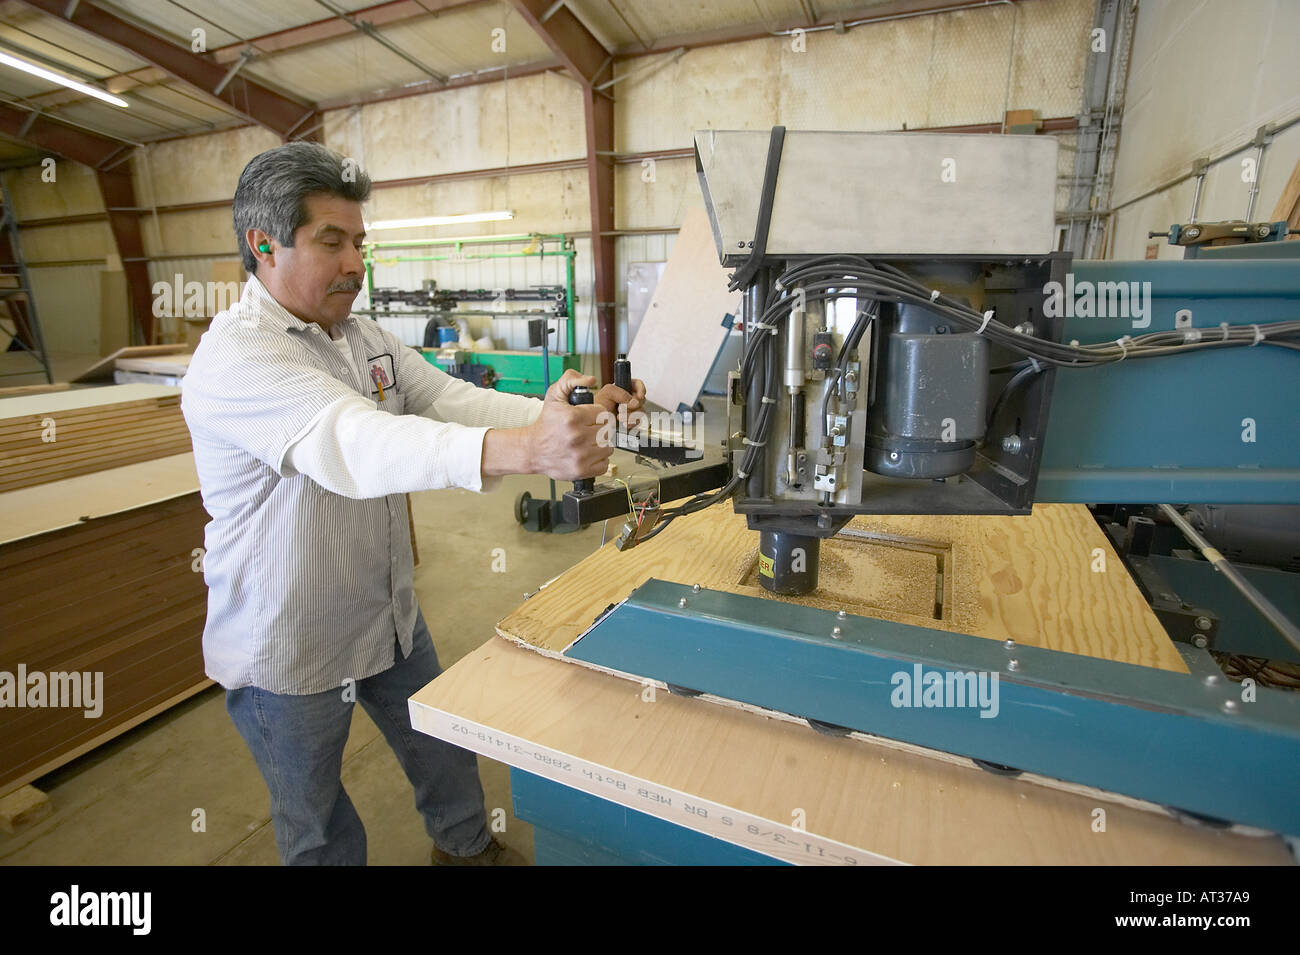 Man working on door manufacturing  sc 1 st  Alamy & Man working on door manufacturing Stock Photo: 1652648 - Alamy